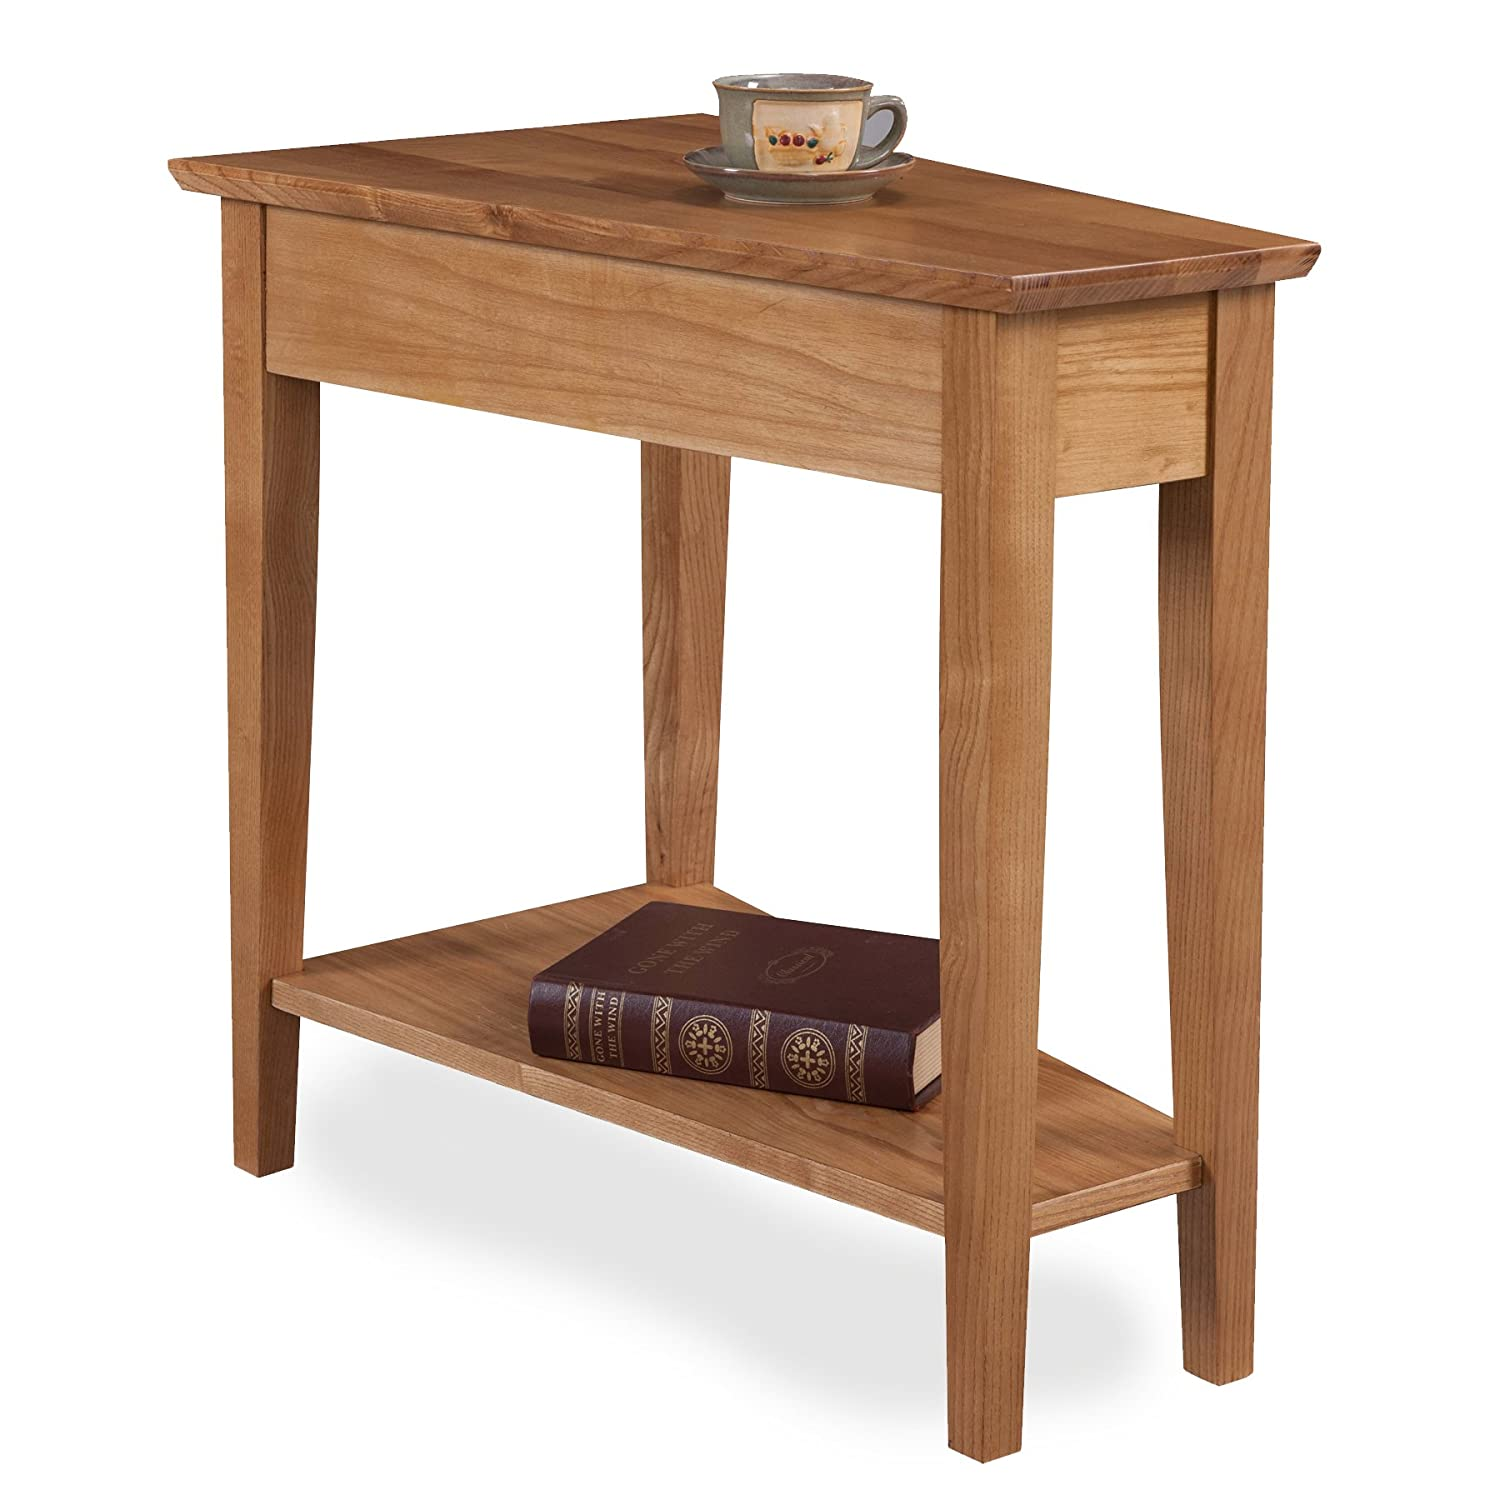 Charmant Amazon.com: Leick 10074 DS Desert Sands Recliner Wedge End Table: Kitchen U0026  Dining